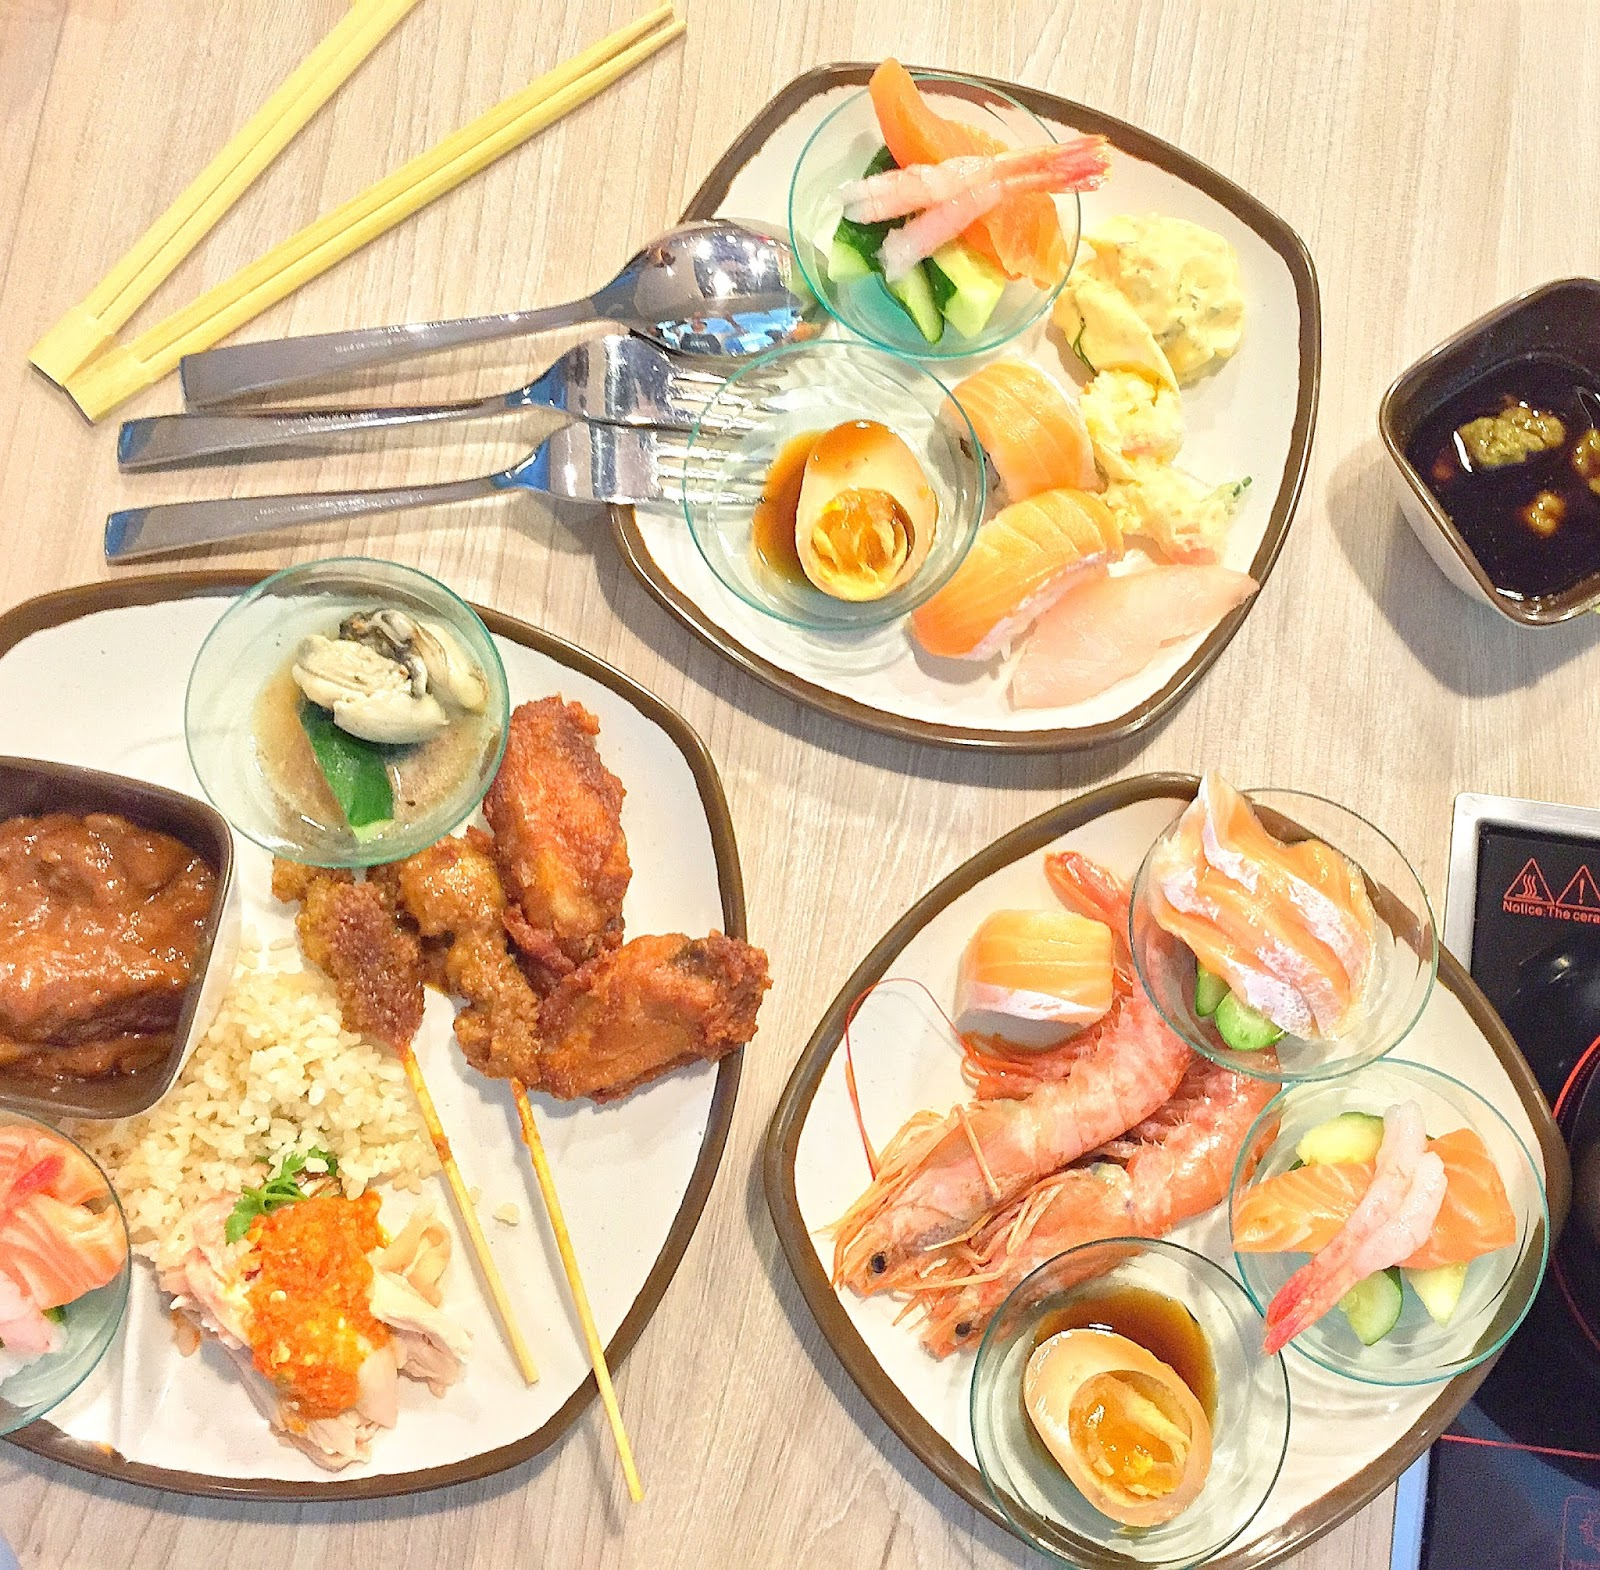 Sakura International Buffet at Yio Chu Kang 3